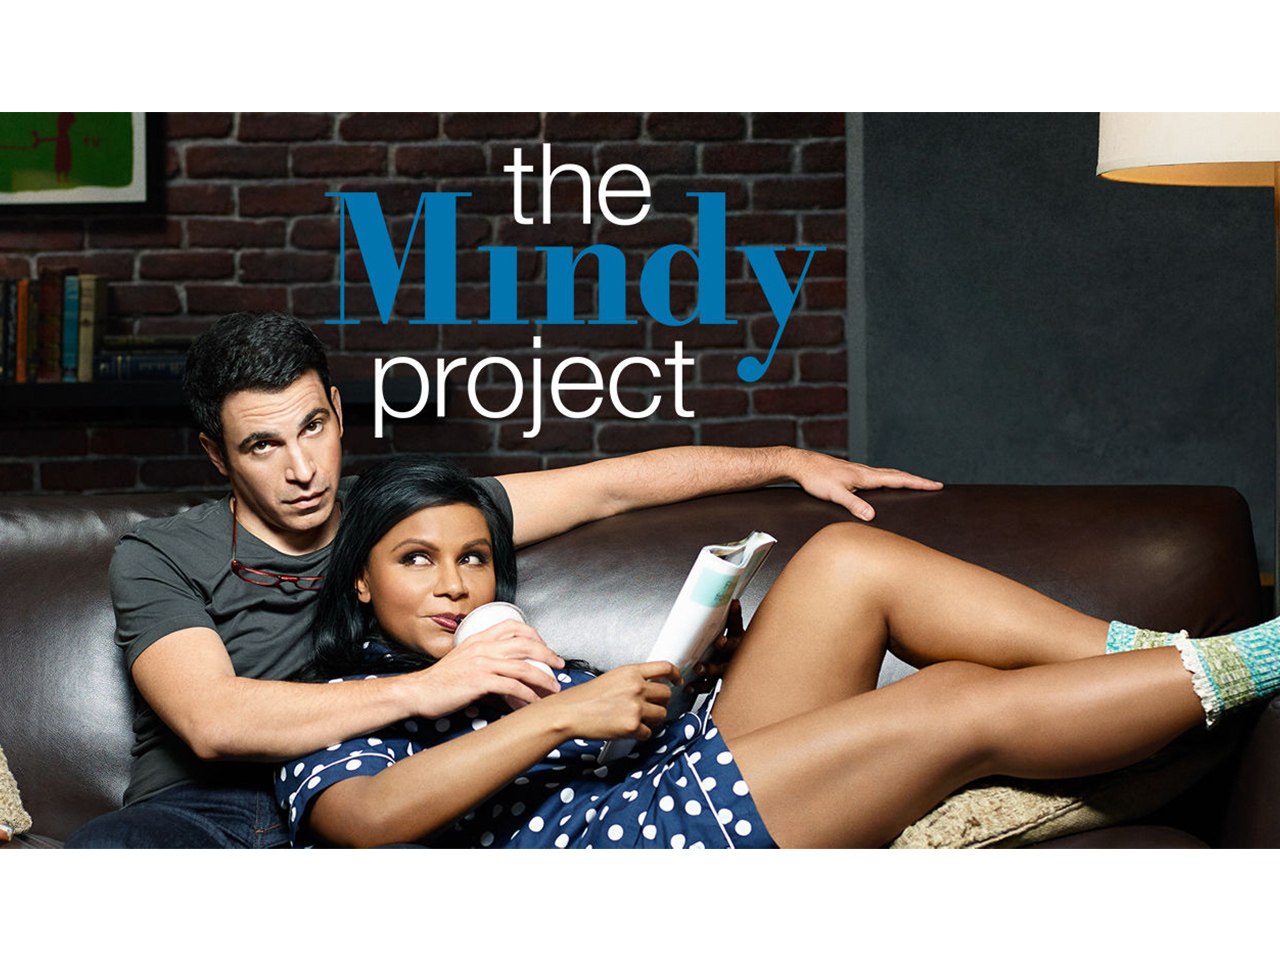 Promo Image for The Mindy Project showing a couple laying on a leather sofa